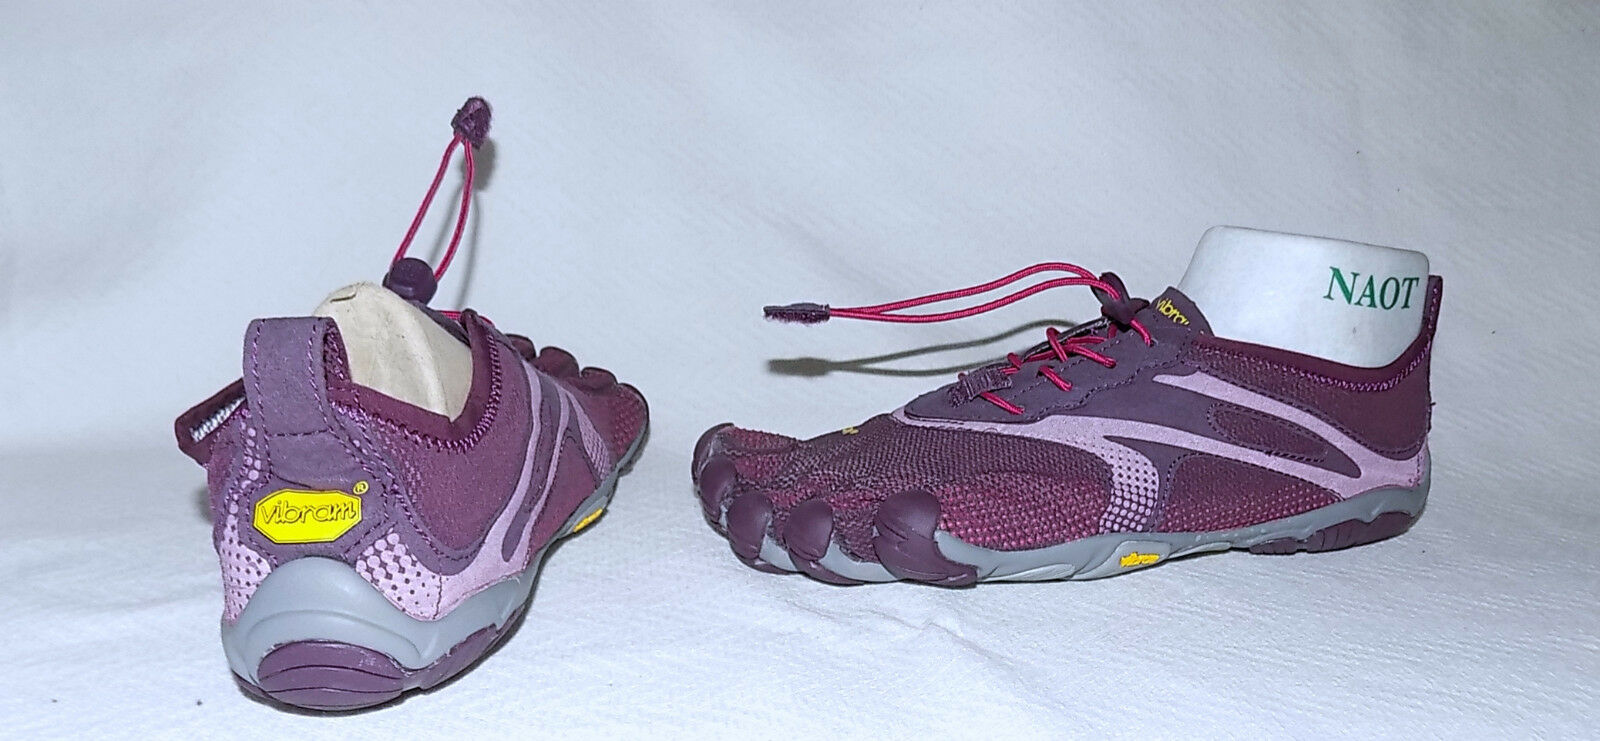 VIBRAM Five Fingers Fingers Fingers Sport Orthopedic Shoes-Size 38=6,1/2M-Purple-Great condition 51aaaa